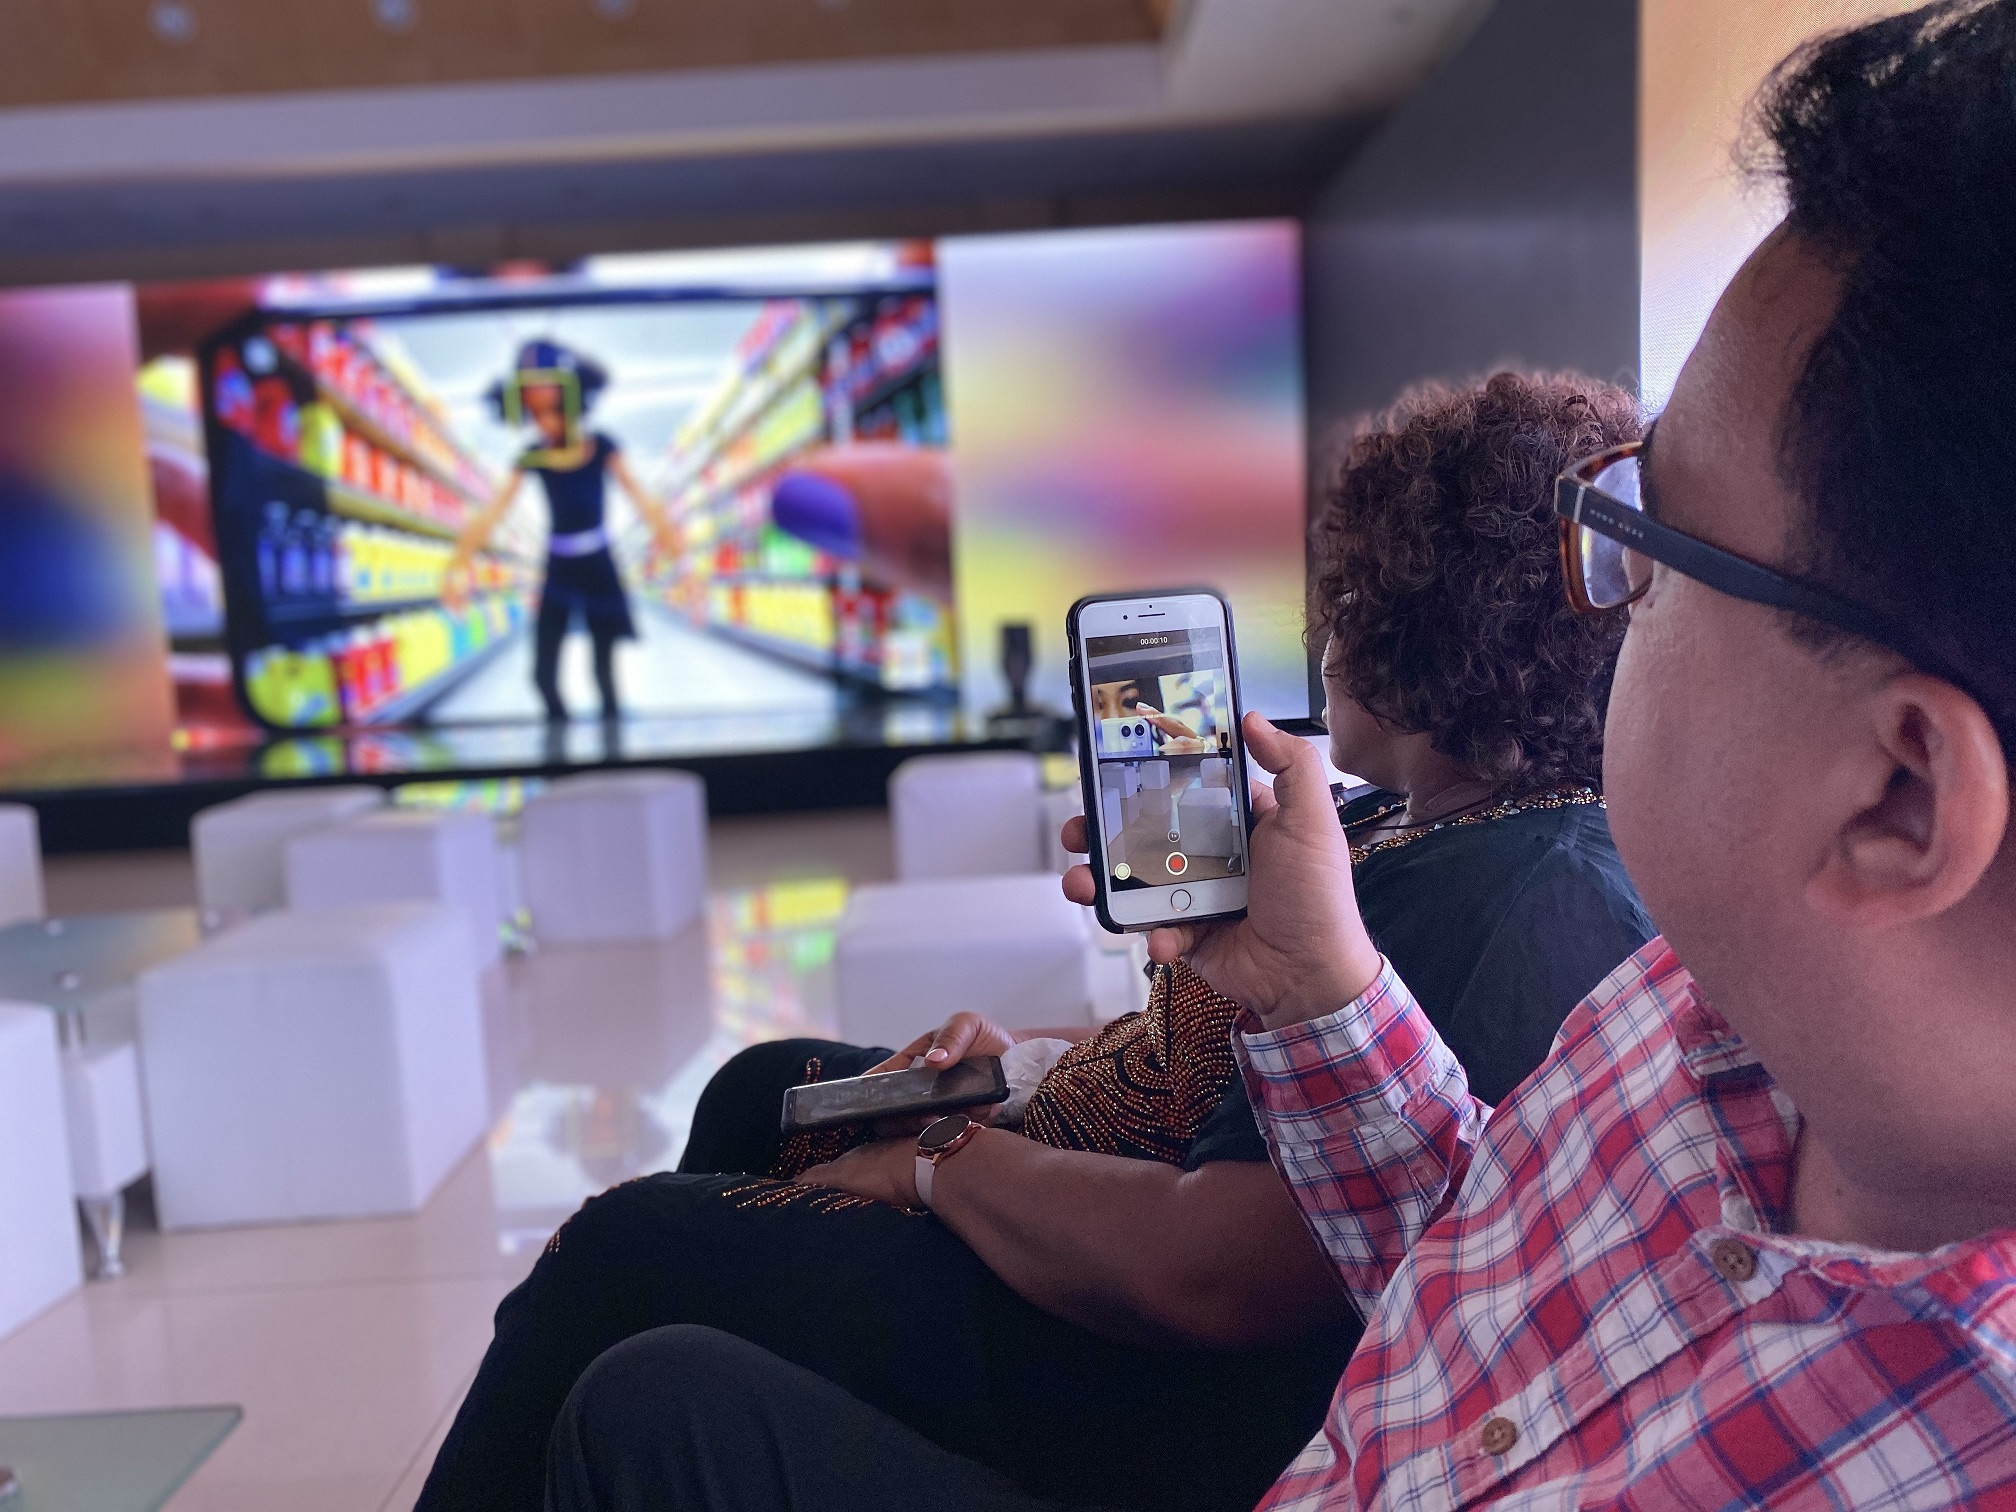 Apple officially launches iPhone 11 in Nigeria with an exclusive event